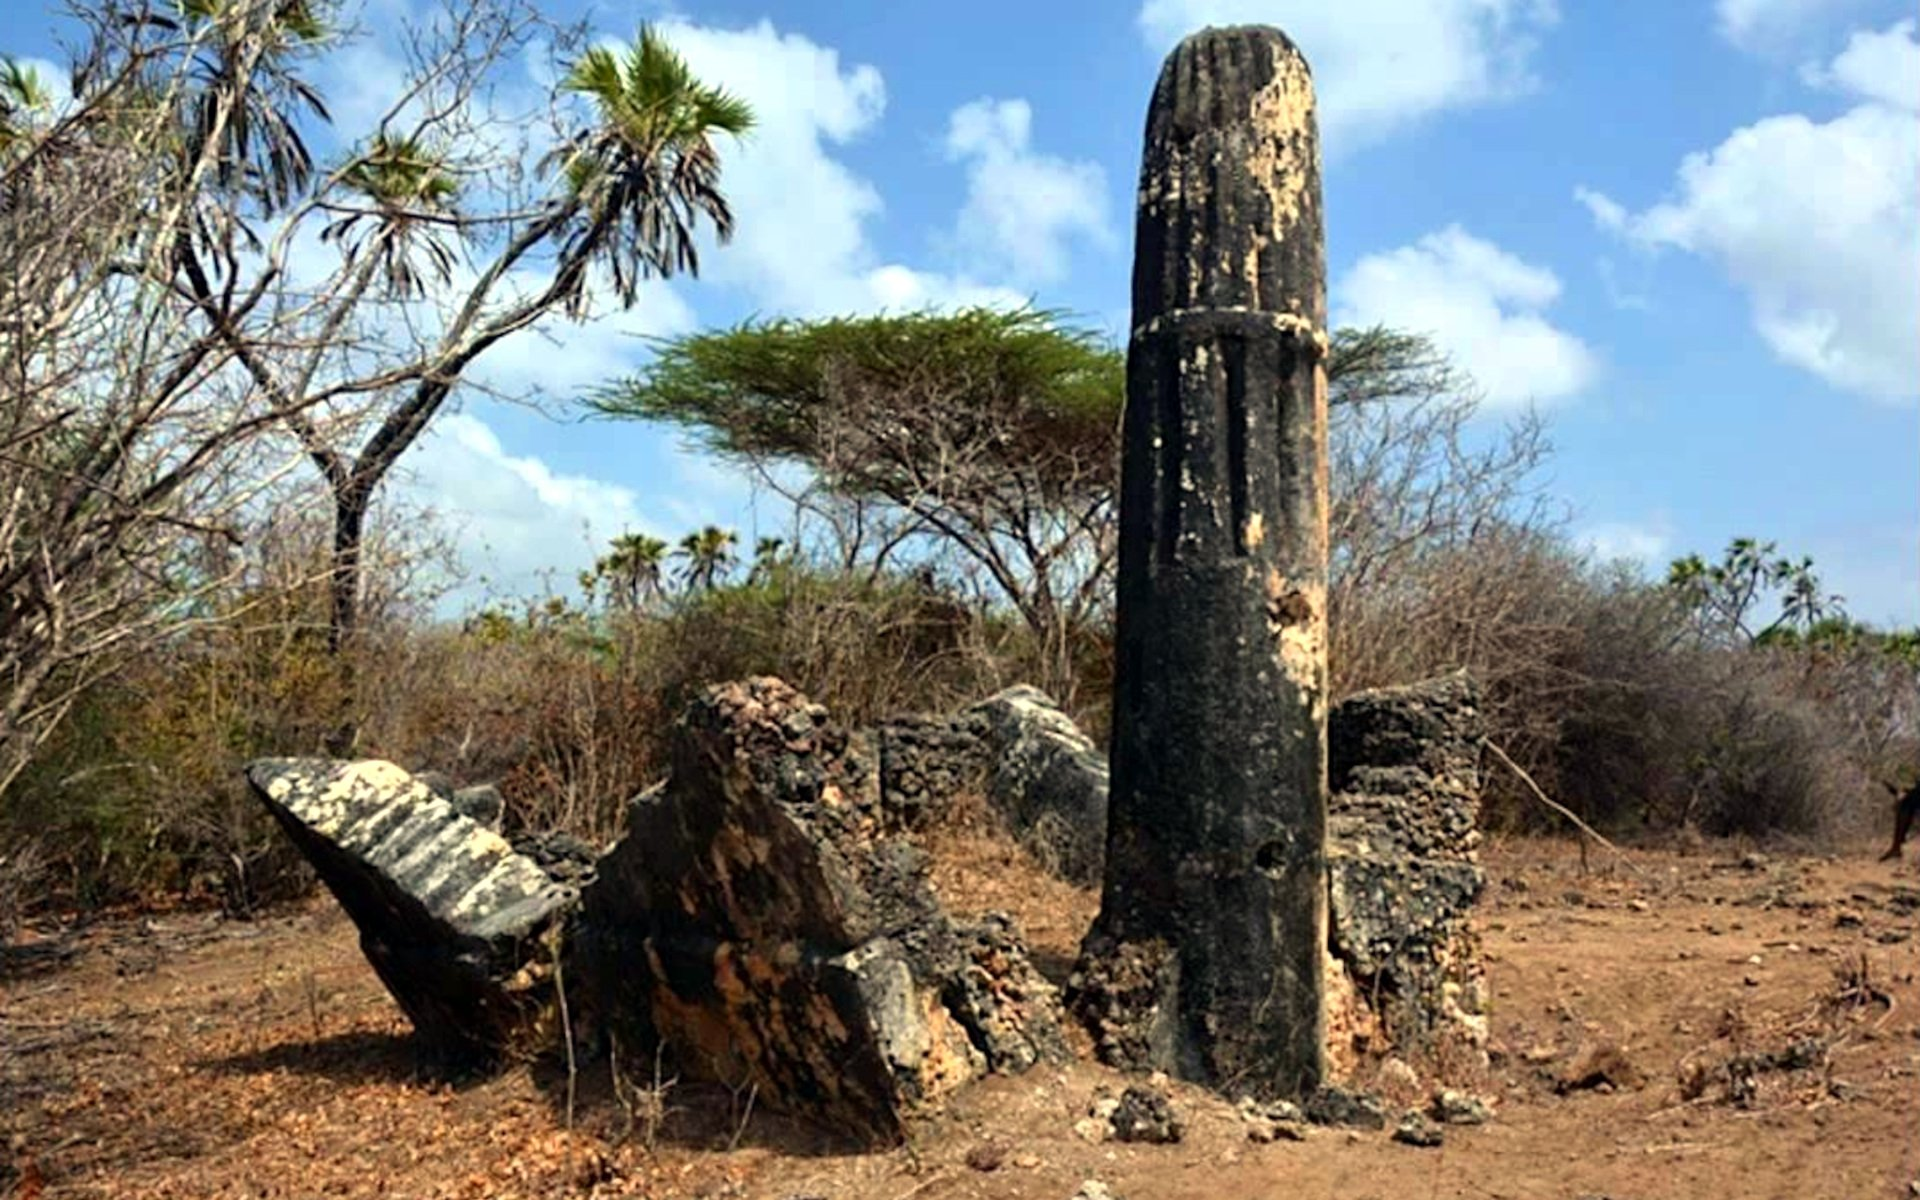 Shanga Ruins lie off the Kenyan Coast on Pate Island, which is part of the Lamu Archipelago. Most also see them as an archaeological site.